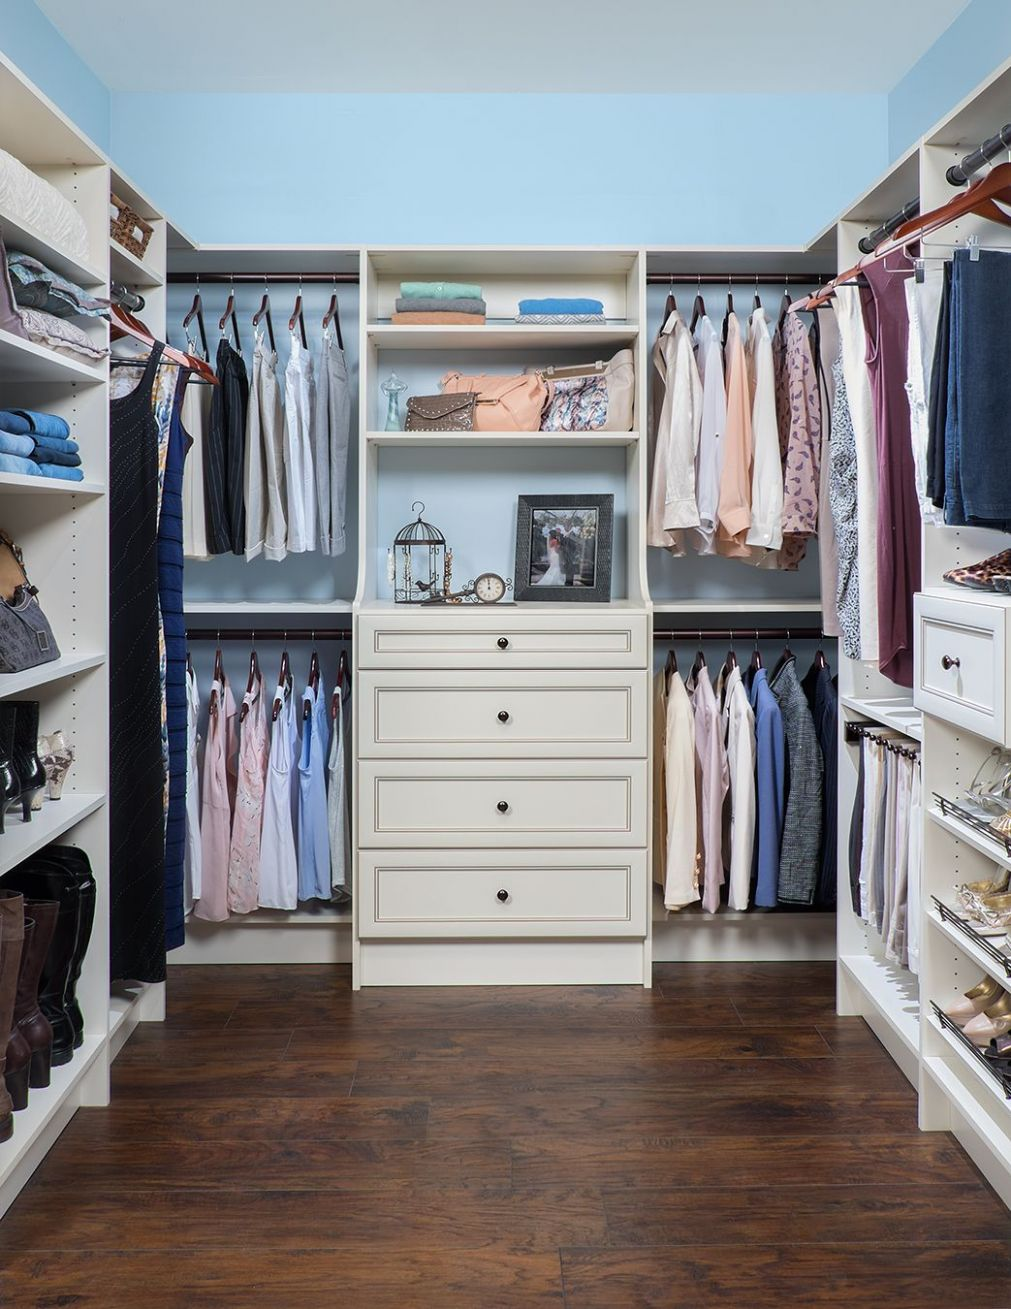 12 Small Walk in Closet Ideas and Organizer Designs (With images ...